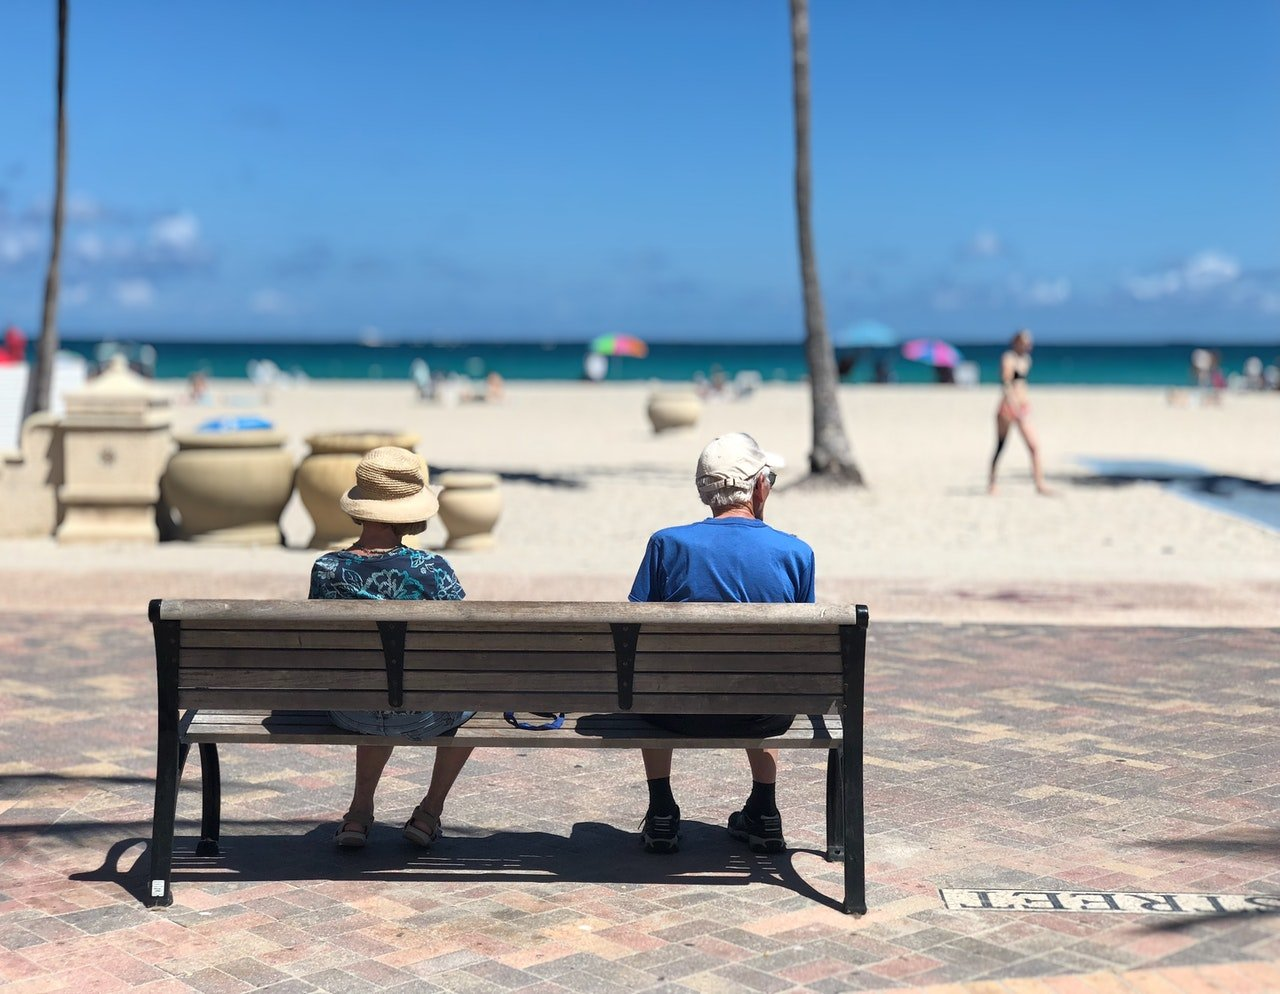 Top 4 Facts About Retirement Communities in Florida